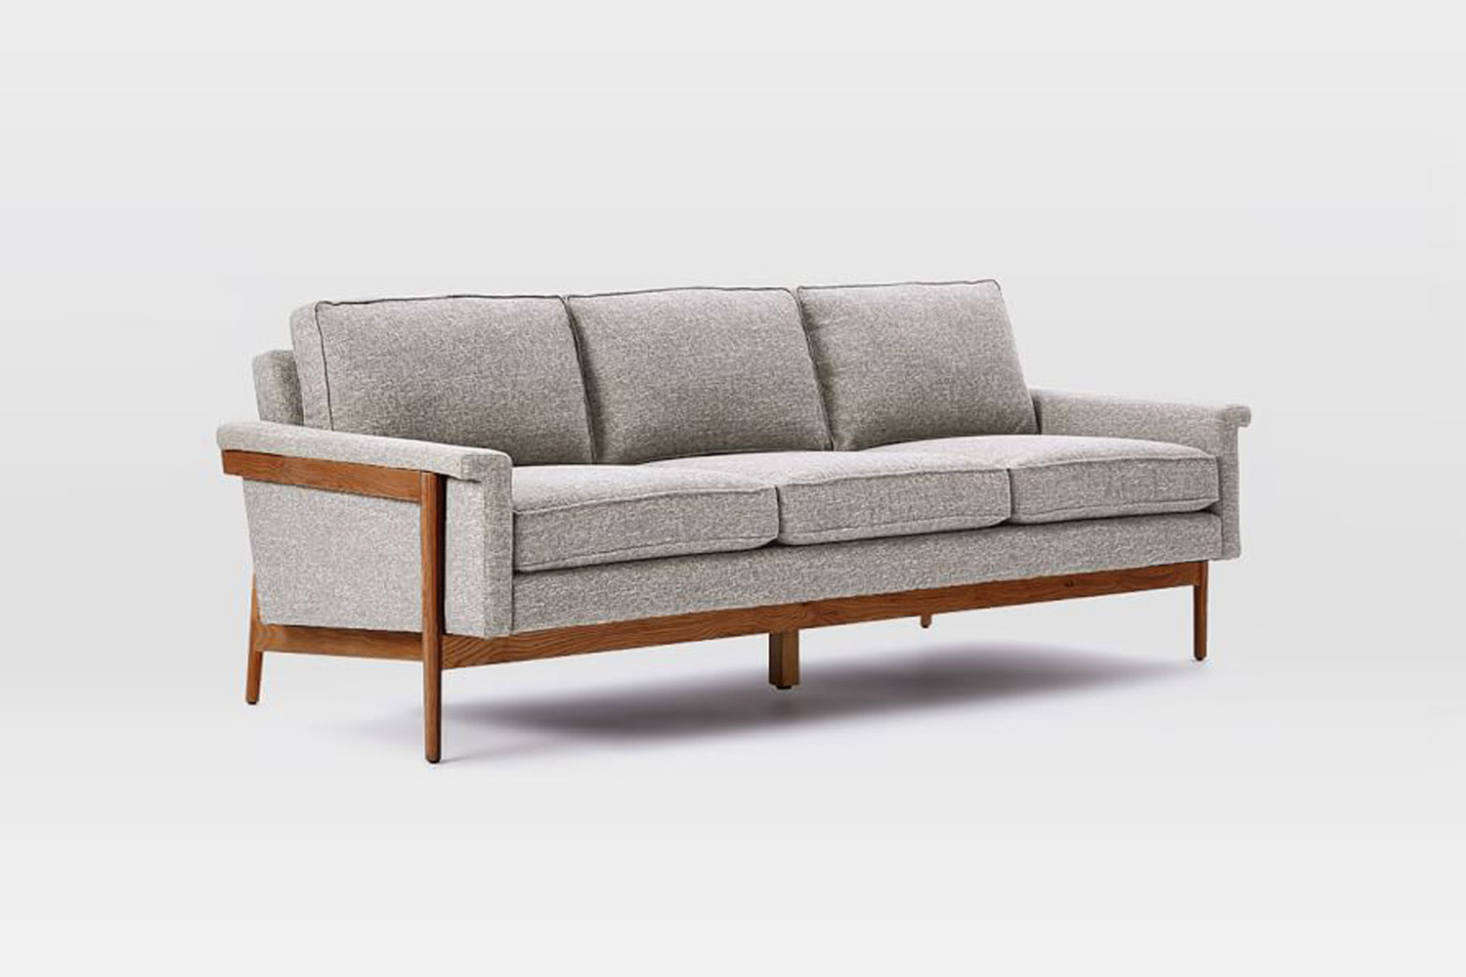 The West Elm Leon Wood Frame Sofa Ranges From 1 399 To 599